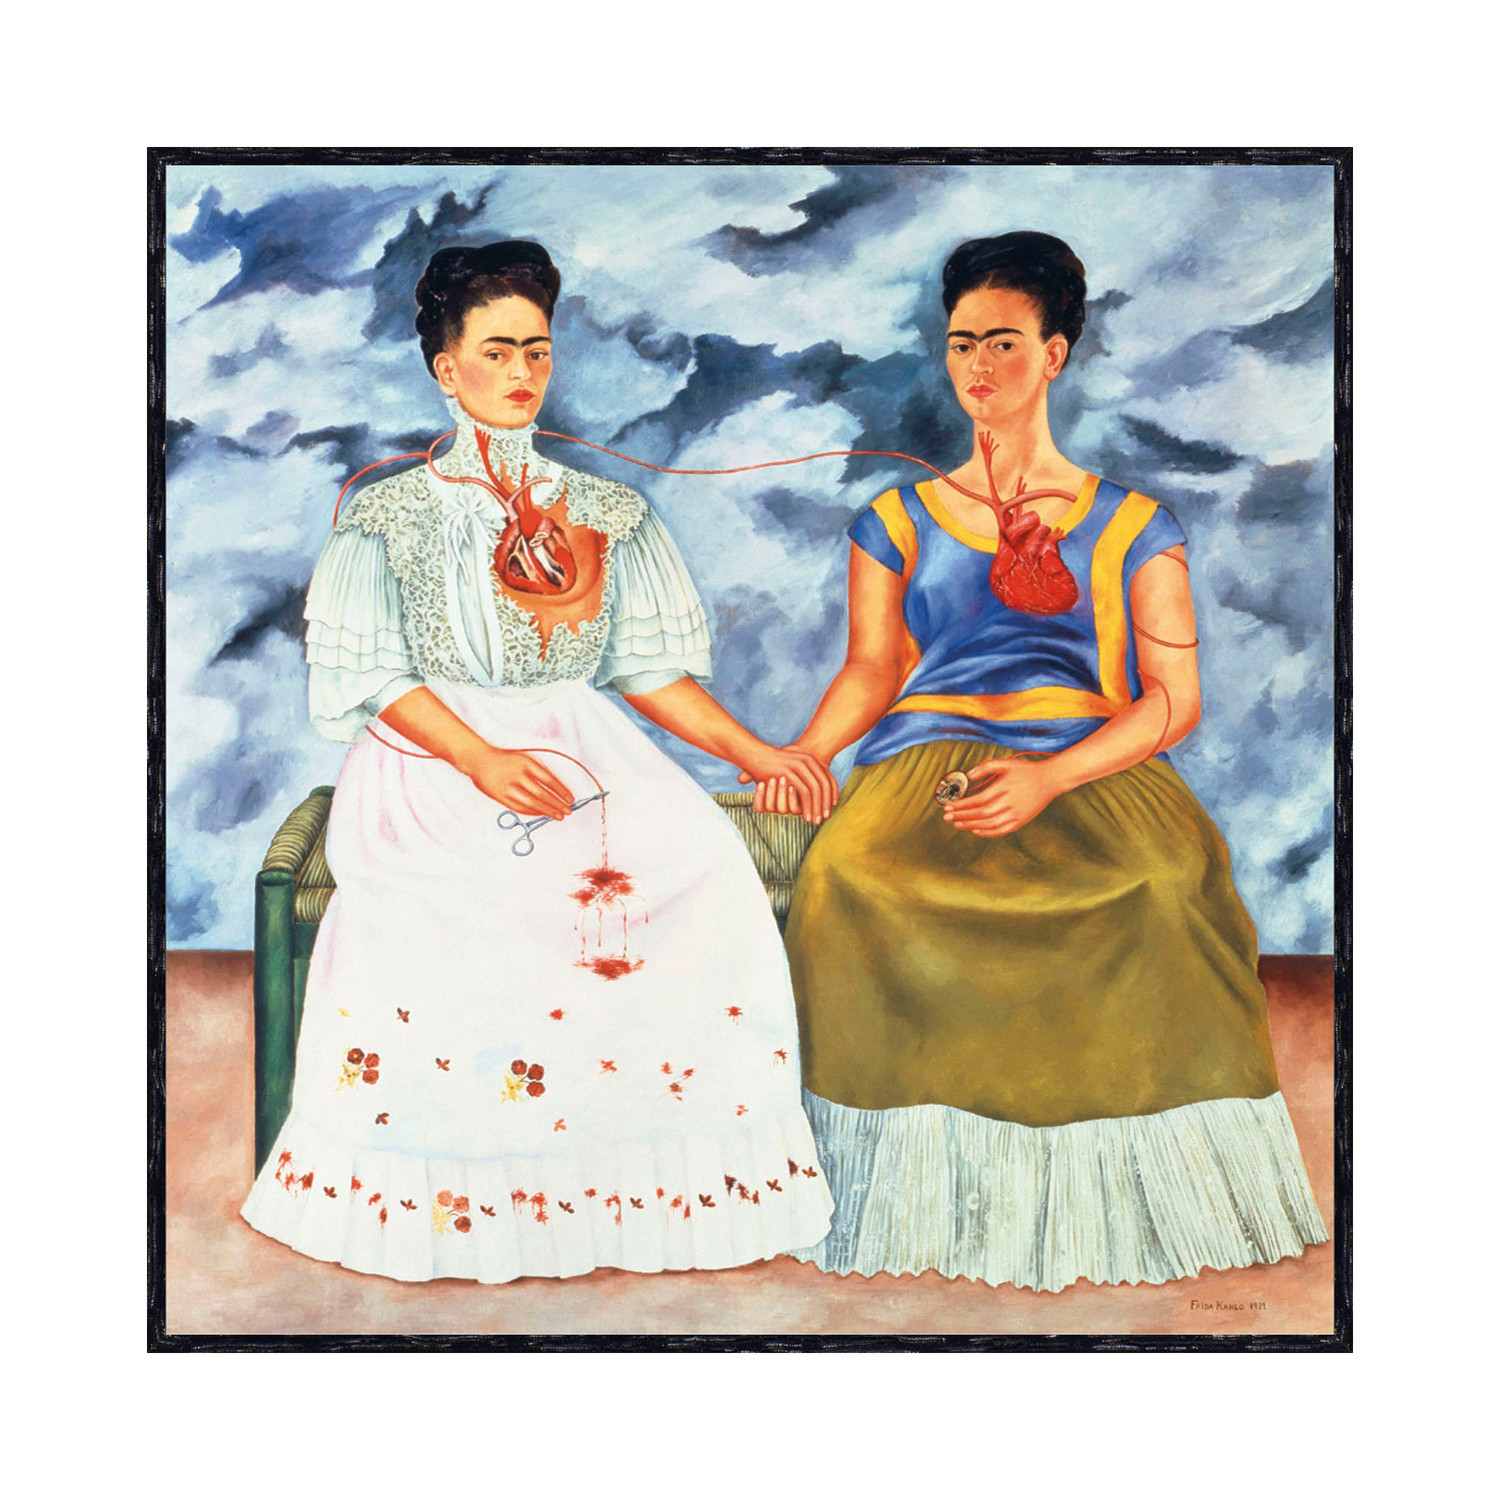 las dos fridas the two fridas [ k ] frida kahlo - two fridas (1939) (possible allusion to the 'gabrielle d'estrées and one of her sisters') done  the weekly flickr.